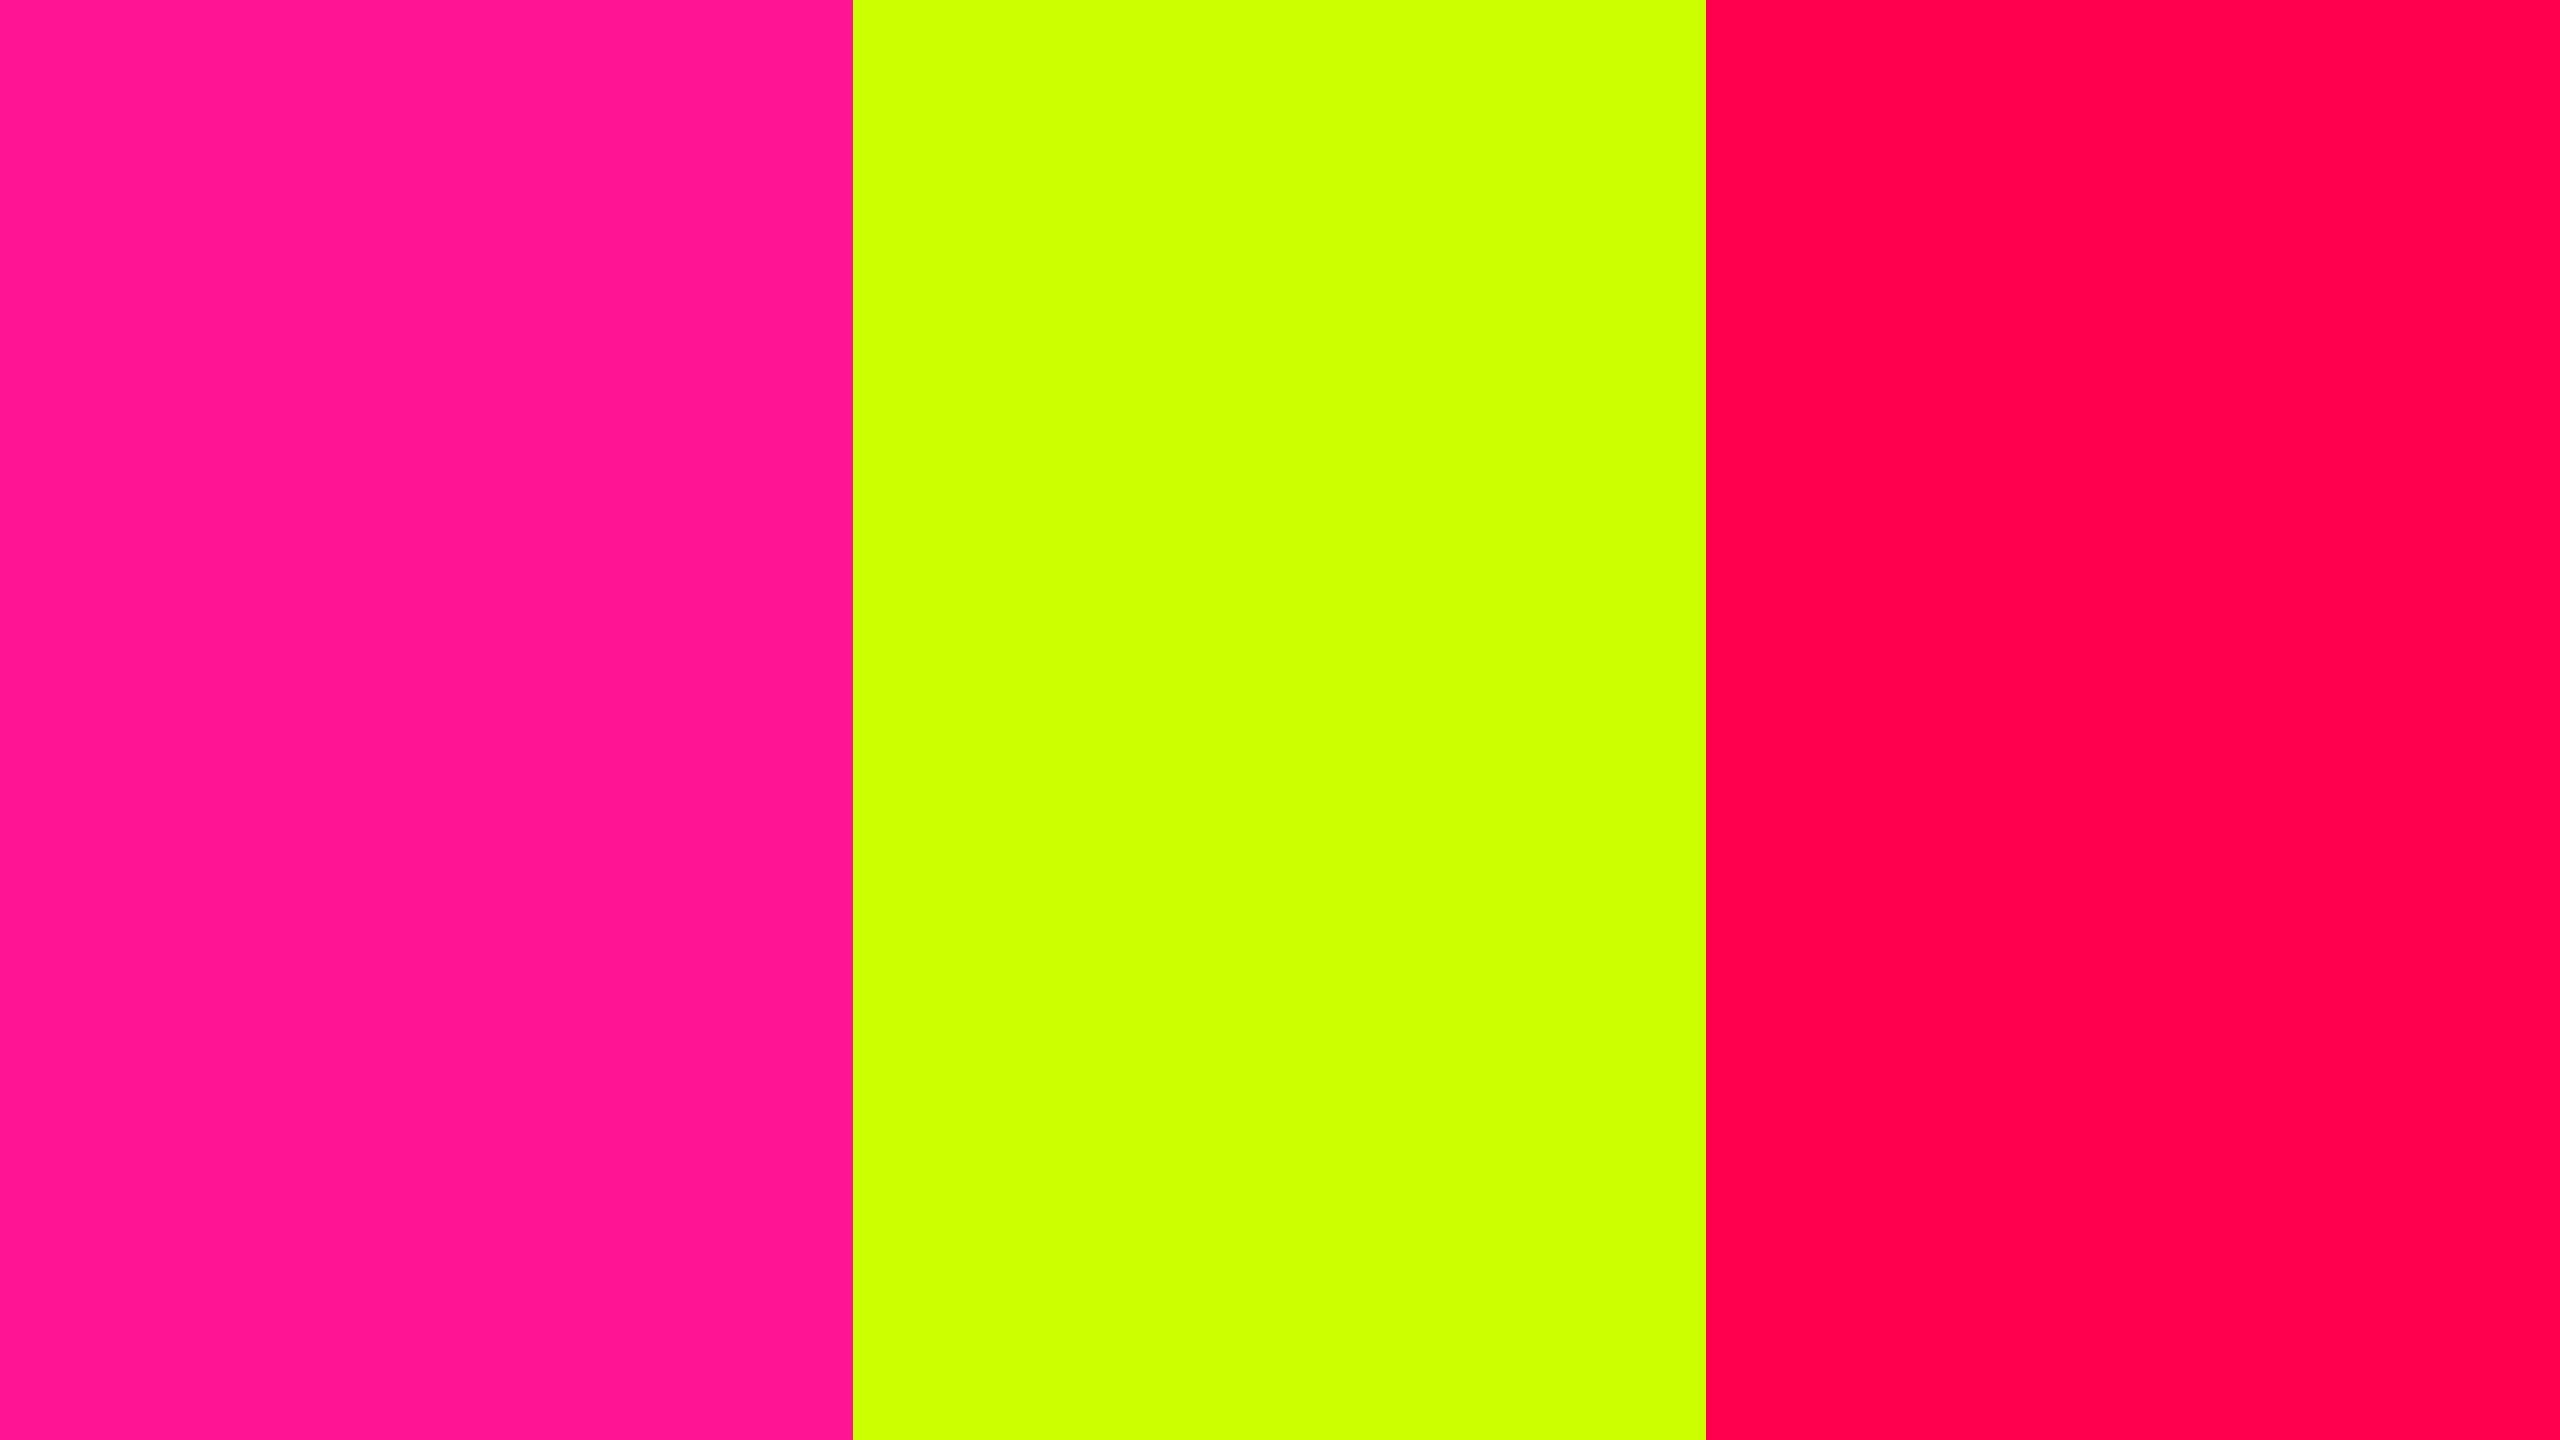 2560x1440-fluorescent-pink-fluorescent-yellow-folly-three